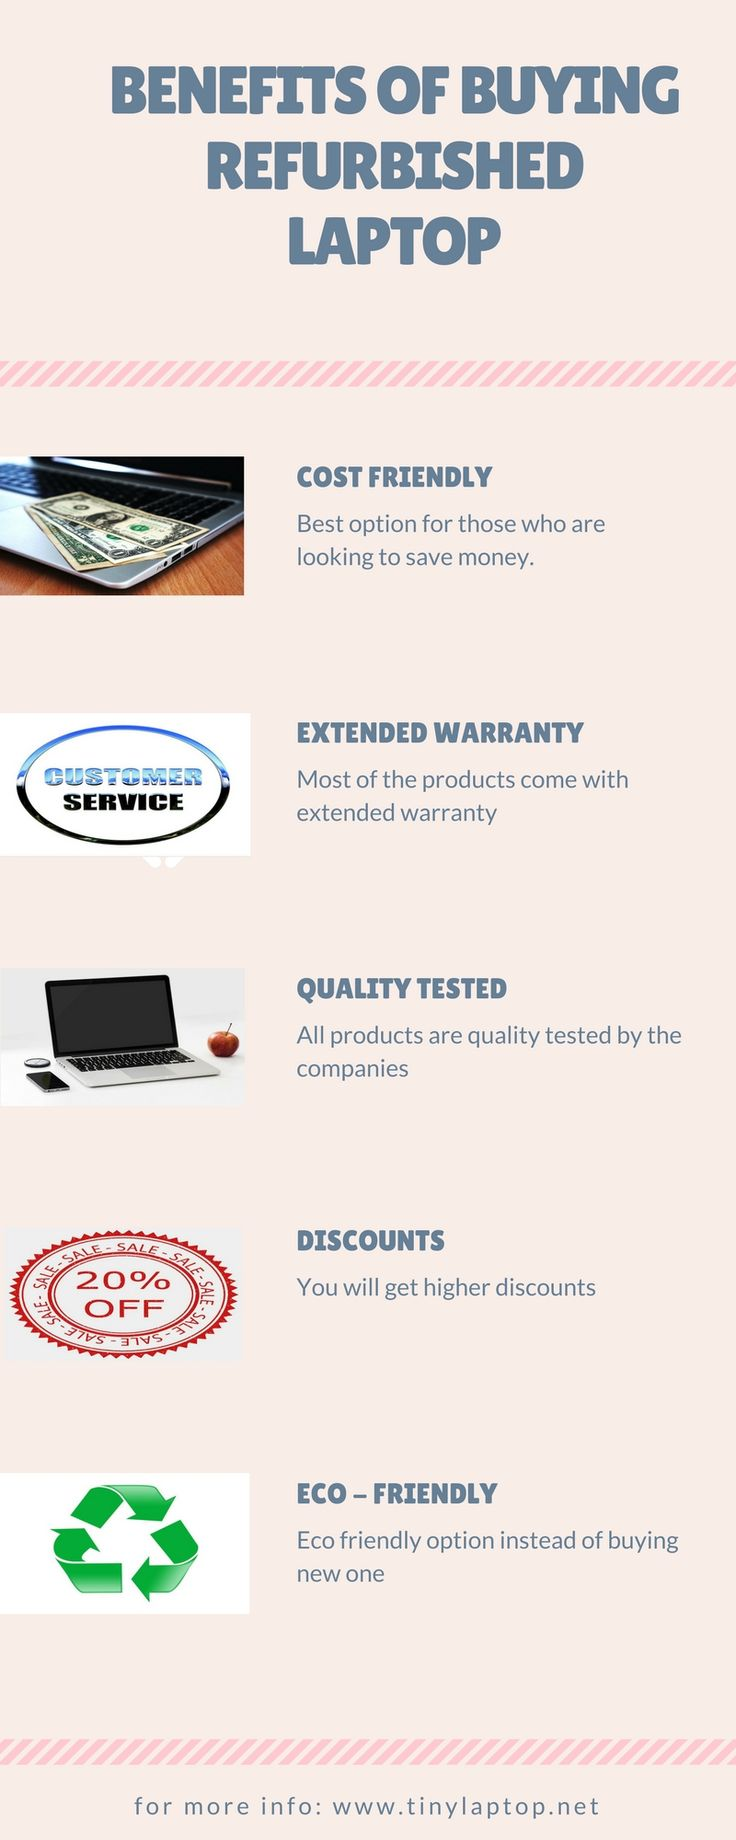 Why you should consider buying refurbished laptop  Buying a refurbished laptop is always beneficial to get a better specification for the same price. But there are other benefits as well